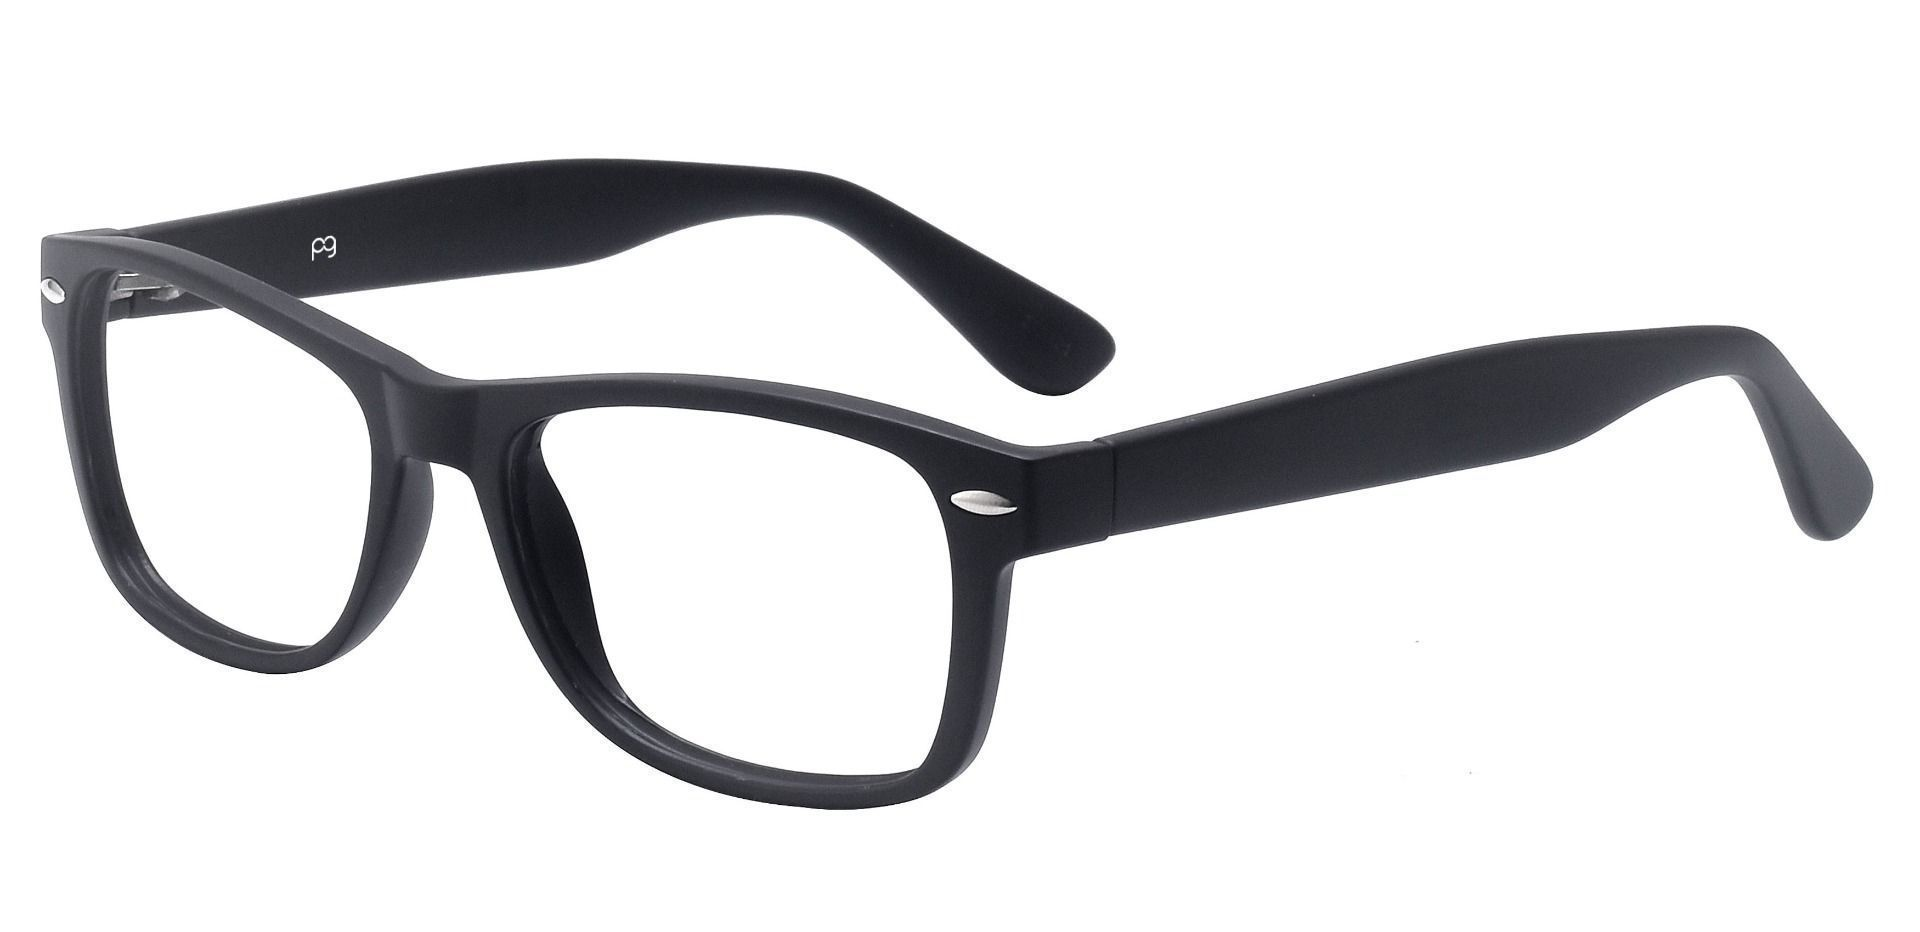 Kent Rectangle Progressive Glasses - Black